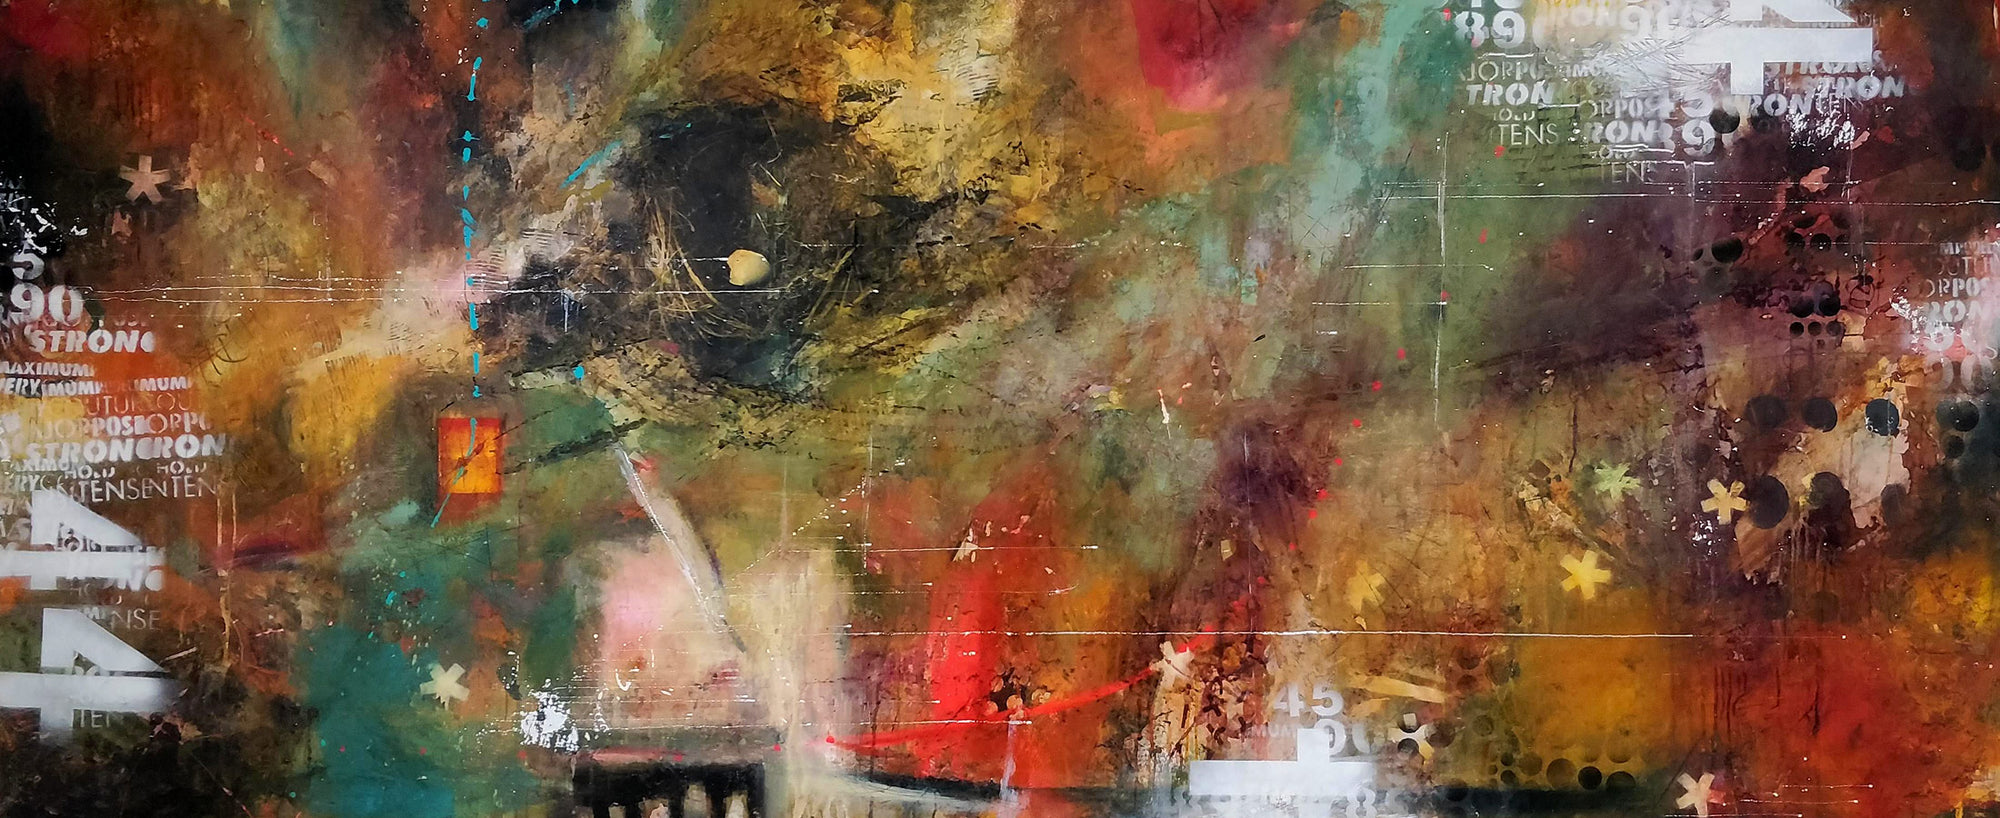 How to save money when creating large encaustic paintings